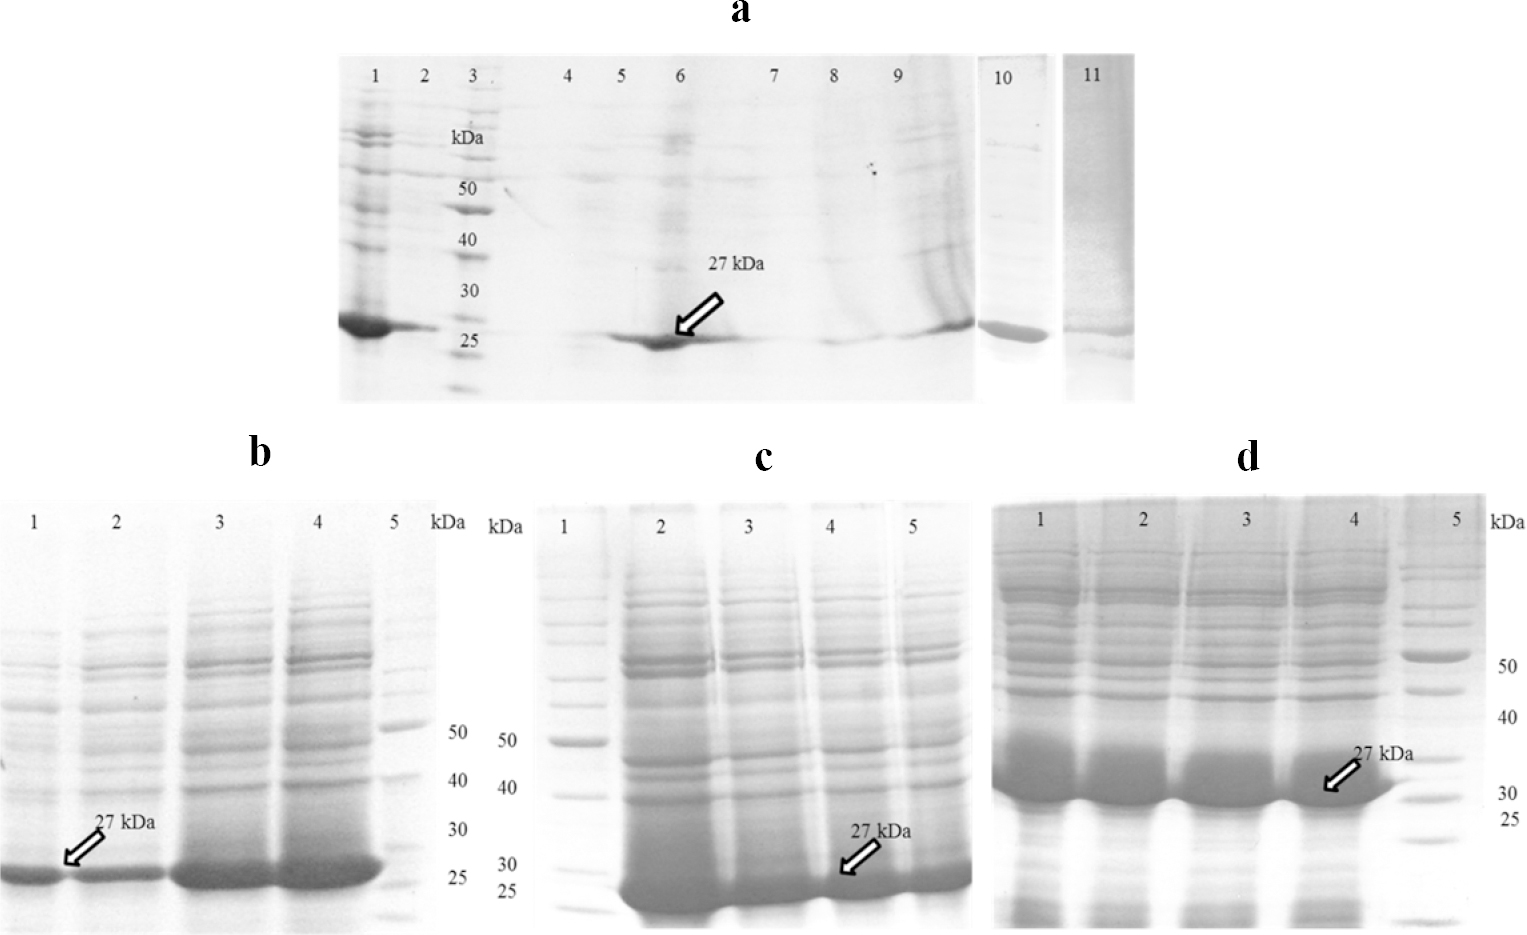 Figure 1: Solubilizing of anti-human epidermal growth factor receptor 2 single chain variable fragment antibody inclusion bodies (HER2 scFv IBs) using (a) different concentrations of urea, guanidine hydrochloride (GdnHCl), and their combinations. Lane 1, urea 6 M; Lane 2, urea 4 M; Lane 4, urea 2 M; Lane 5, GdnHCl 2 M and urea 2 M; Lane 6, GdnHCl 4 M and urea 4 M; Lane 7, GdnHCl 2 M; lane 8, GdnHCl 4 M; Lane 9, GdnHCl 6 M; Lane 10, urea 8 M; and Lane 11, GdnHCl 8 M; (b) Urea 6 M at different pH. Lane 1-4, pH 5, pH 7, pH 9, and pH 11, (C) urea 6 M at pH 11 supplemented with different additives. Lane 2, beta mercaptoethanol (BME) 4 mM; Lane 3, n-Propanol 5%; Lane 4, dithiothreitol (DTT) 4 mM; and Lane 5, no additive; (d) Urea (6 M) at pH 11 supplemented with different concentrations of BME. Lane 1: BME 2 mM; Lane 2: BME 4 mM; Lane 3: BME 6 mM and Lane 4: BME 8 mM. Lanes 3a, 5b, 1c, and 5d are protein marker.